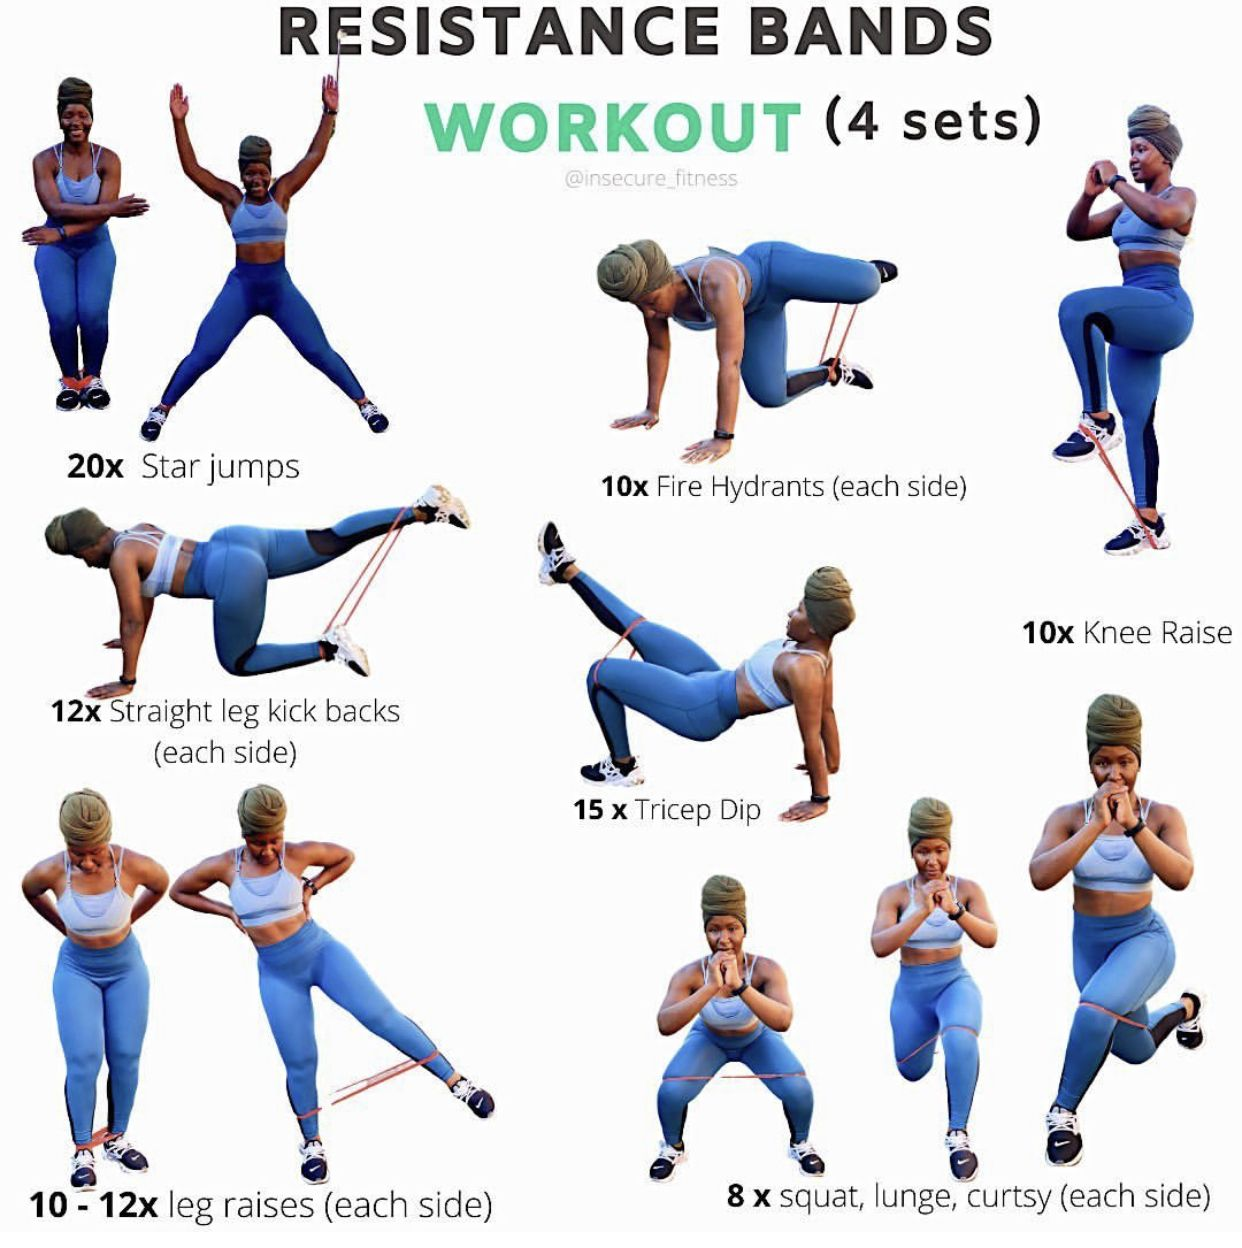 Pin By Andrea On Fit Plan In 2020 Resistance Band Workout Resistance Band Band Workout